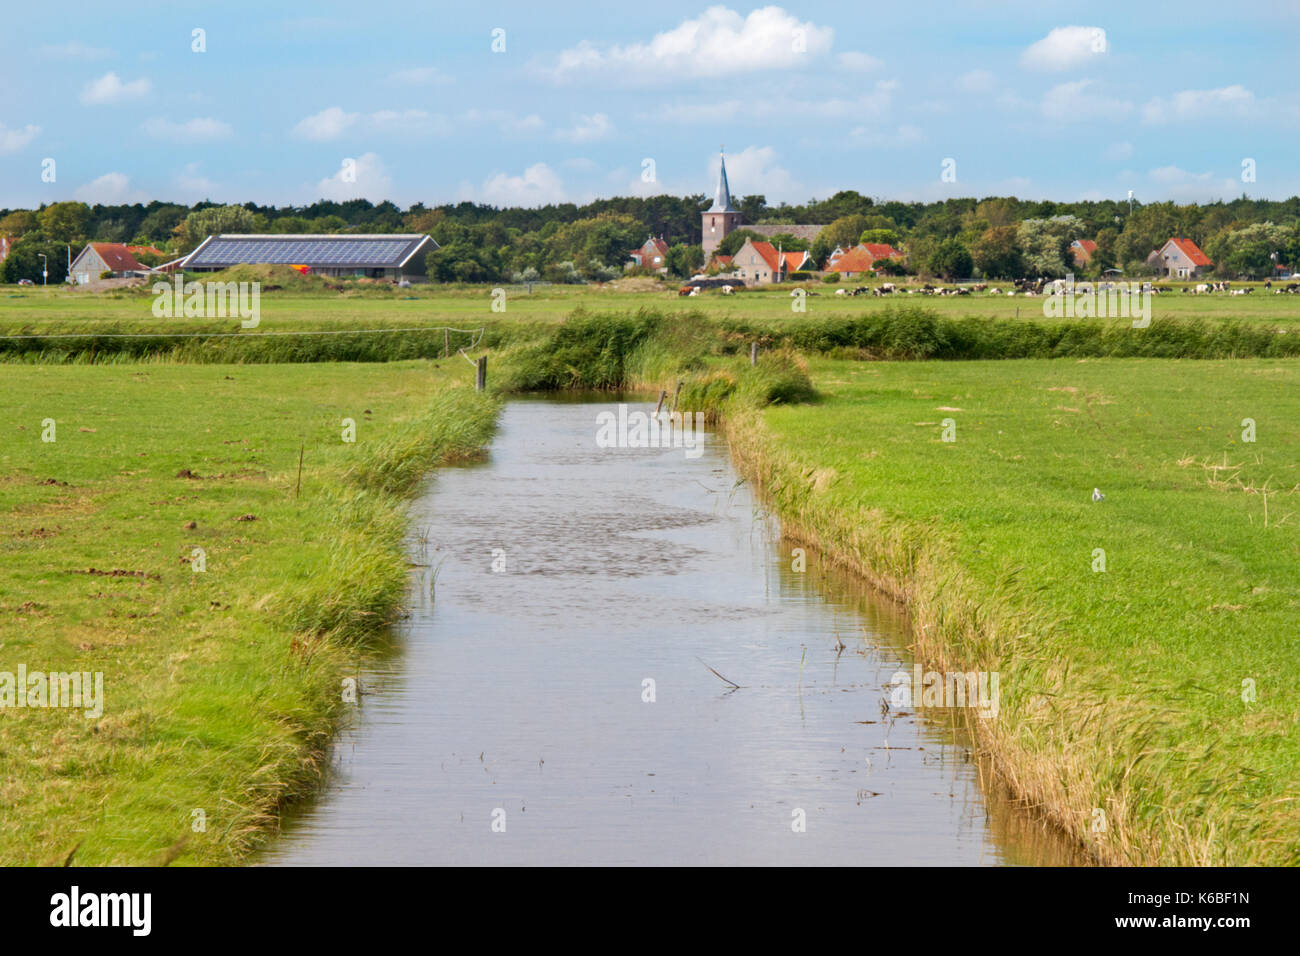 Dutch landscape with a broad ditch between meadows, in the distance a church tower and red tiled roofs of farmhouses - Stock Image